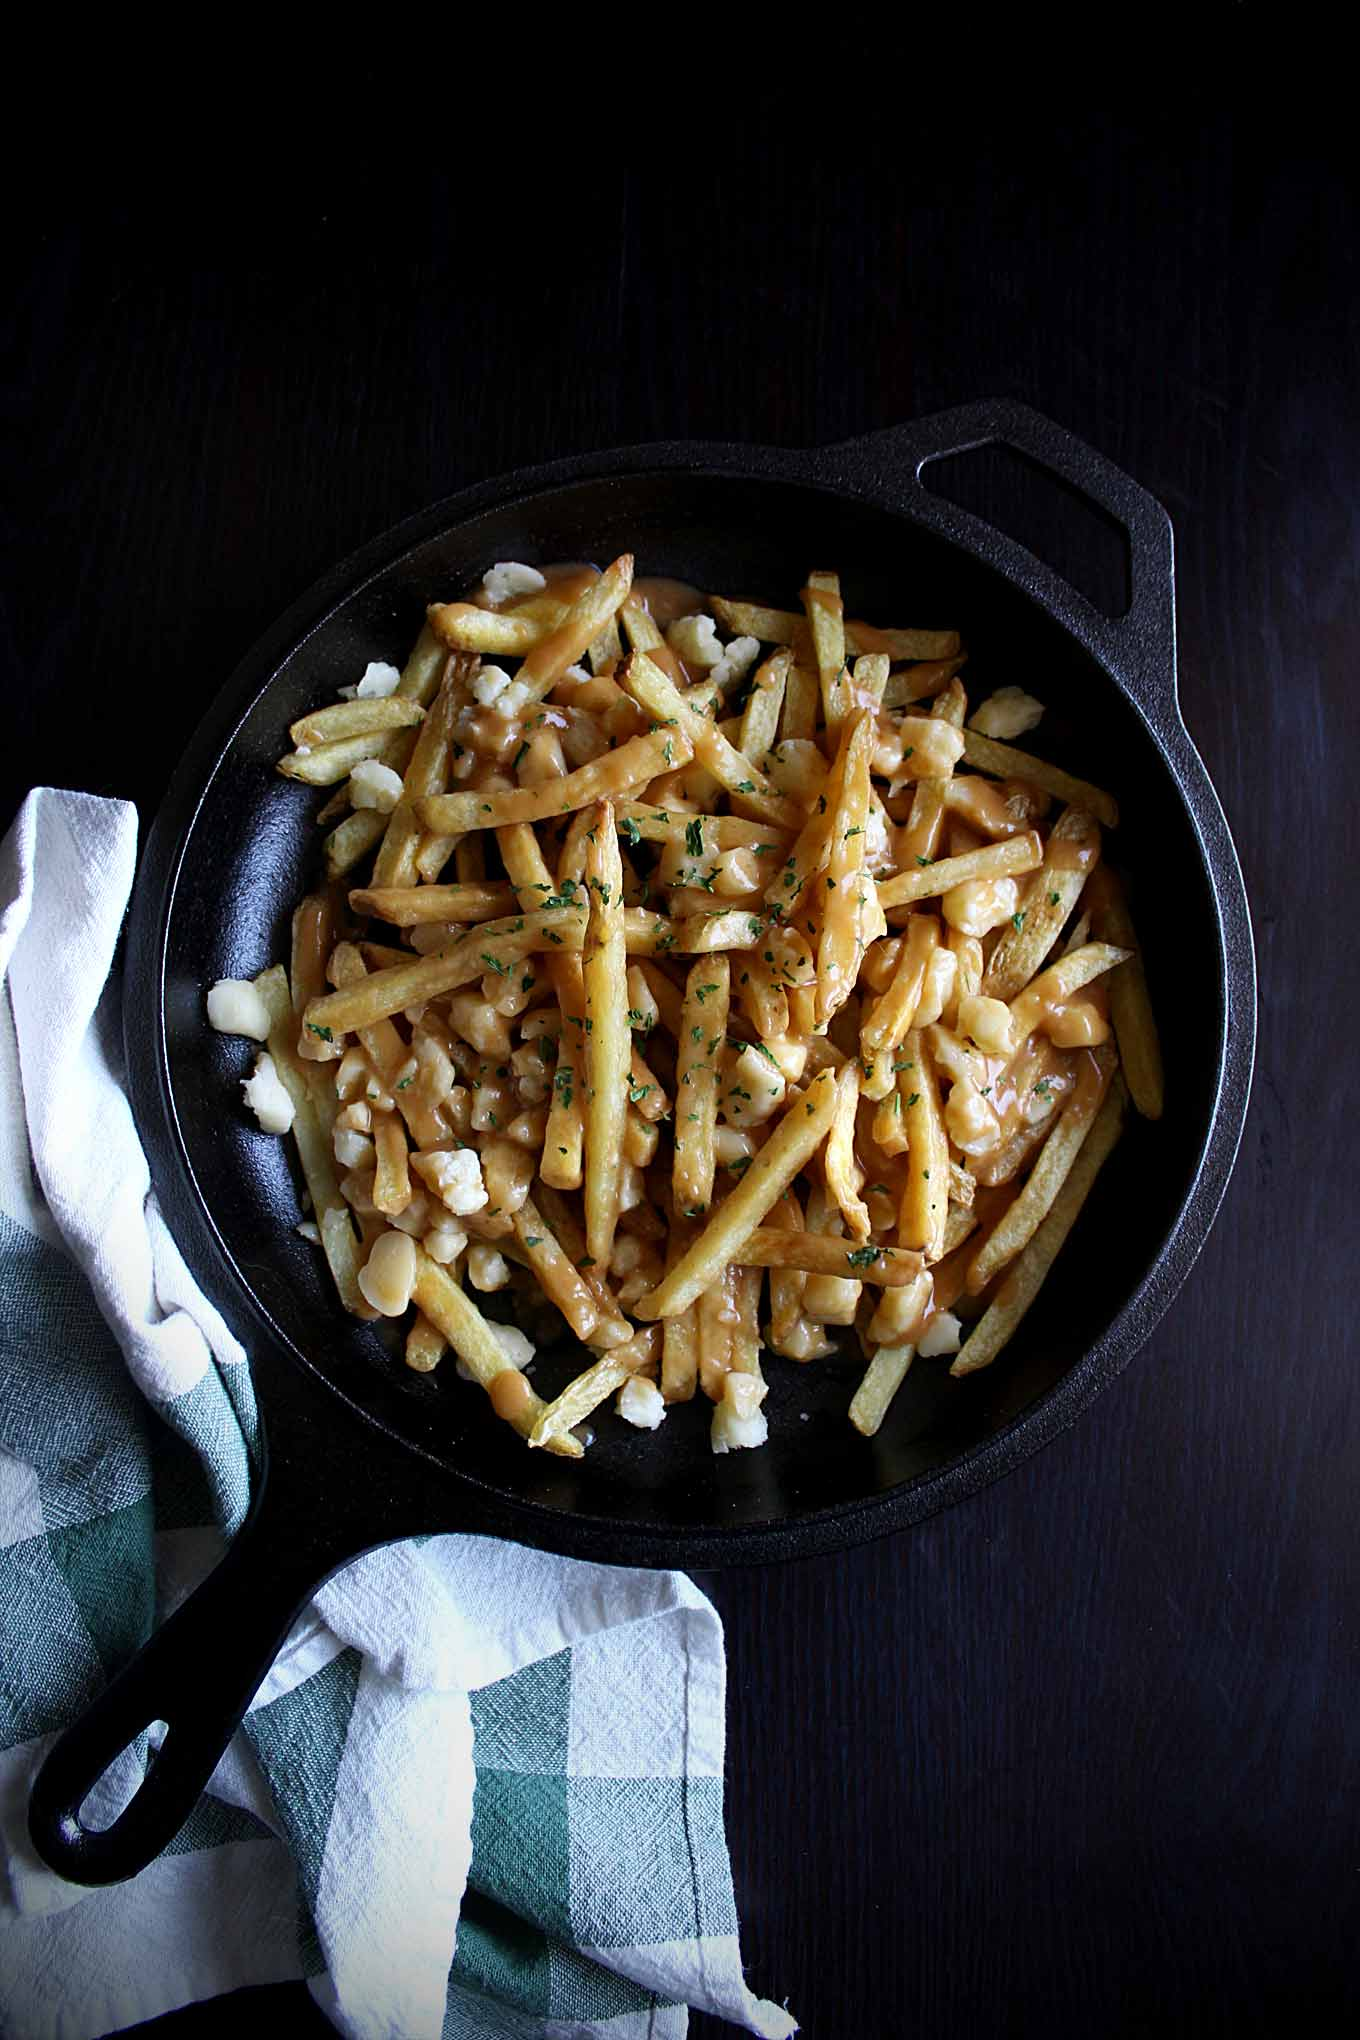 Homemade Poutine Gravy | Easy Poutine | Beef & Chicken Poutine Gravy | Fries and Cheese